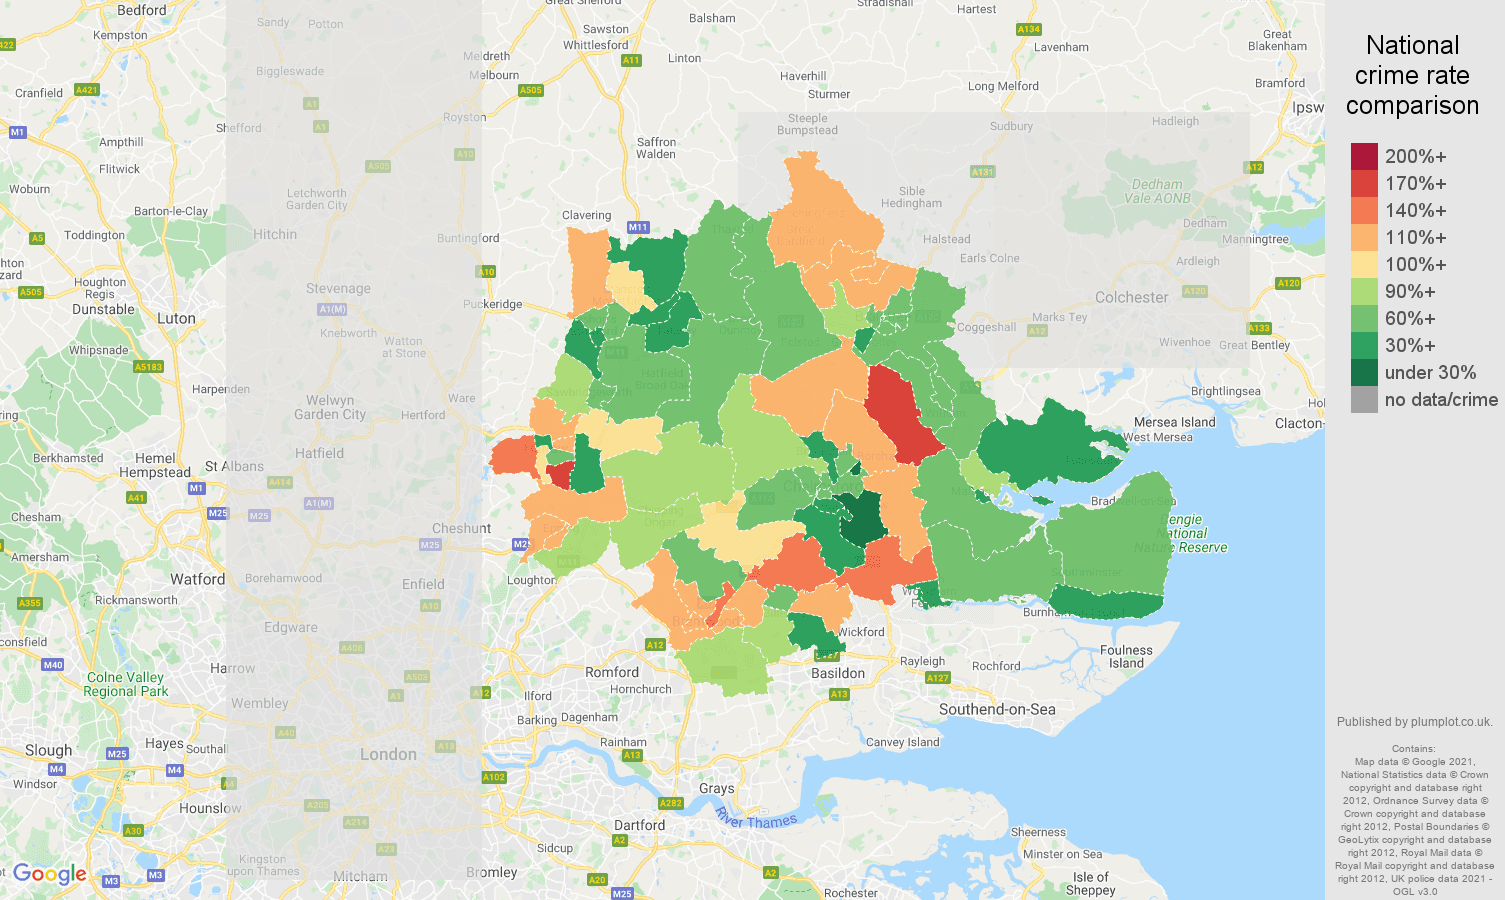 Chelmsford burglary crime rate comparison map